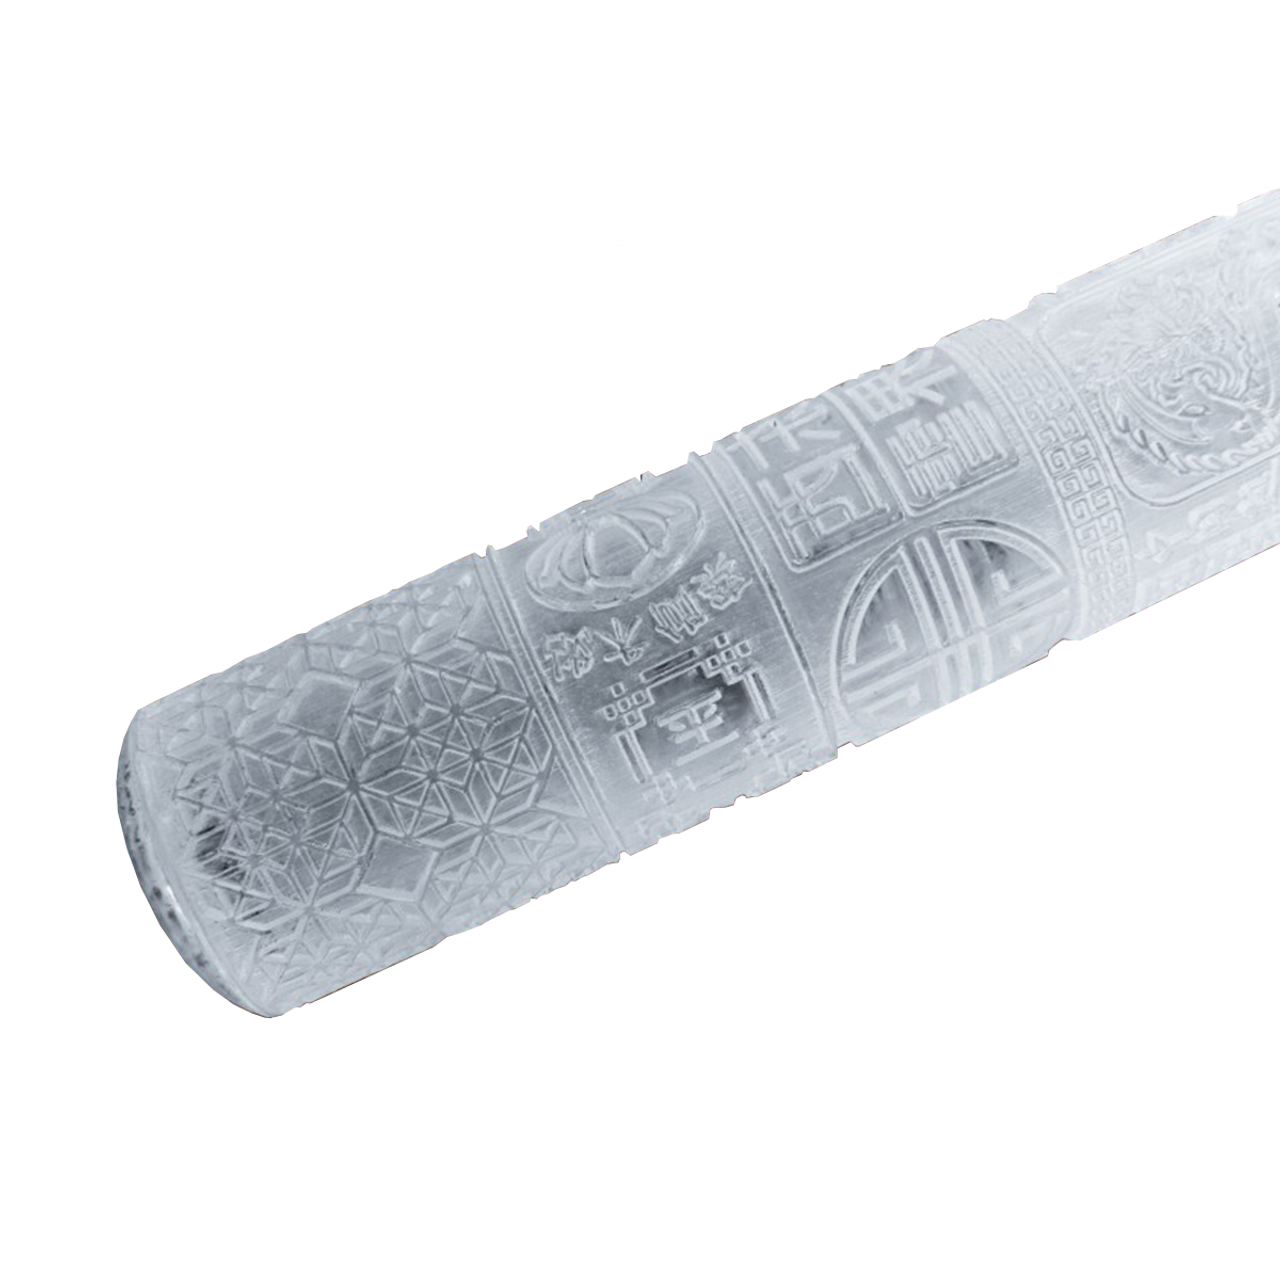 Rolling Pin Texture - China